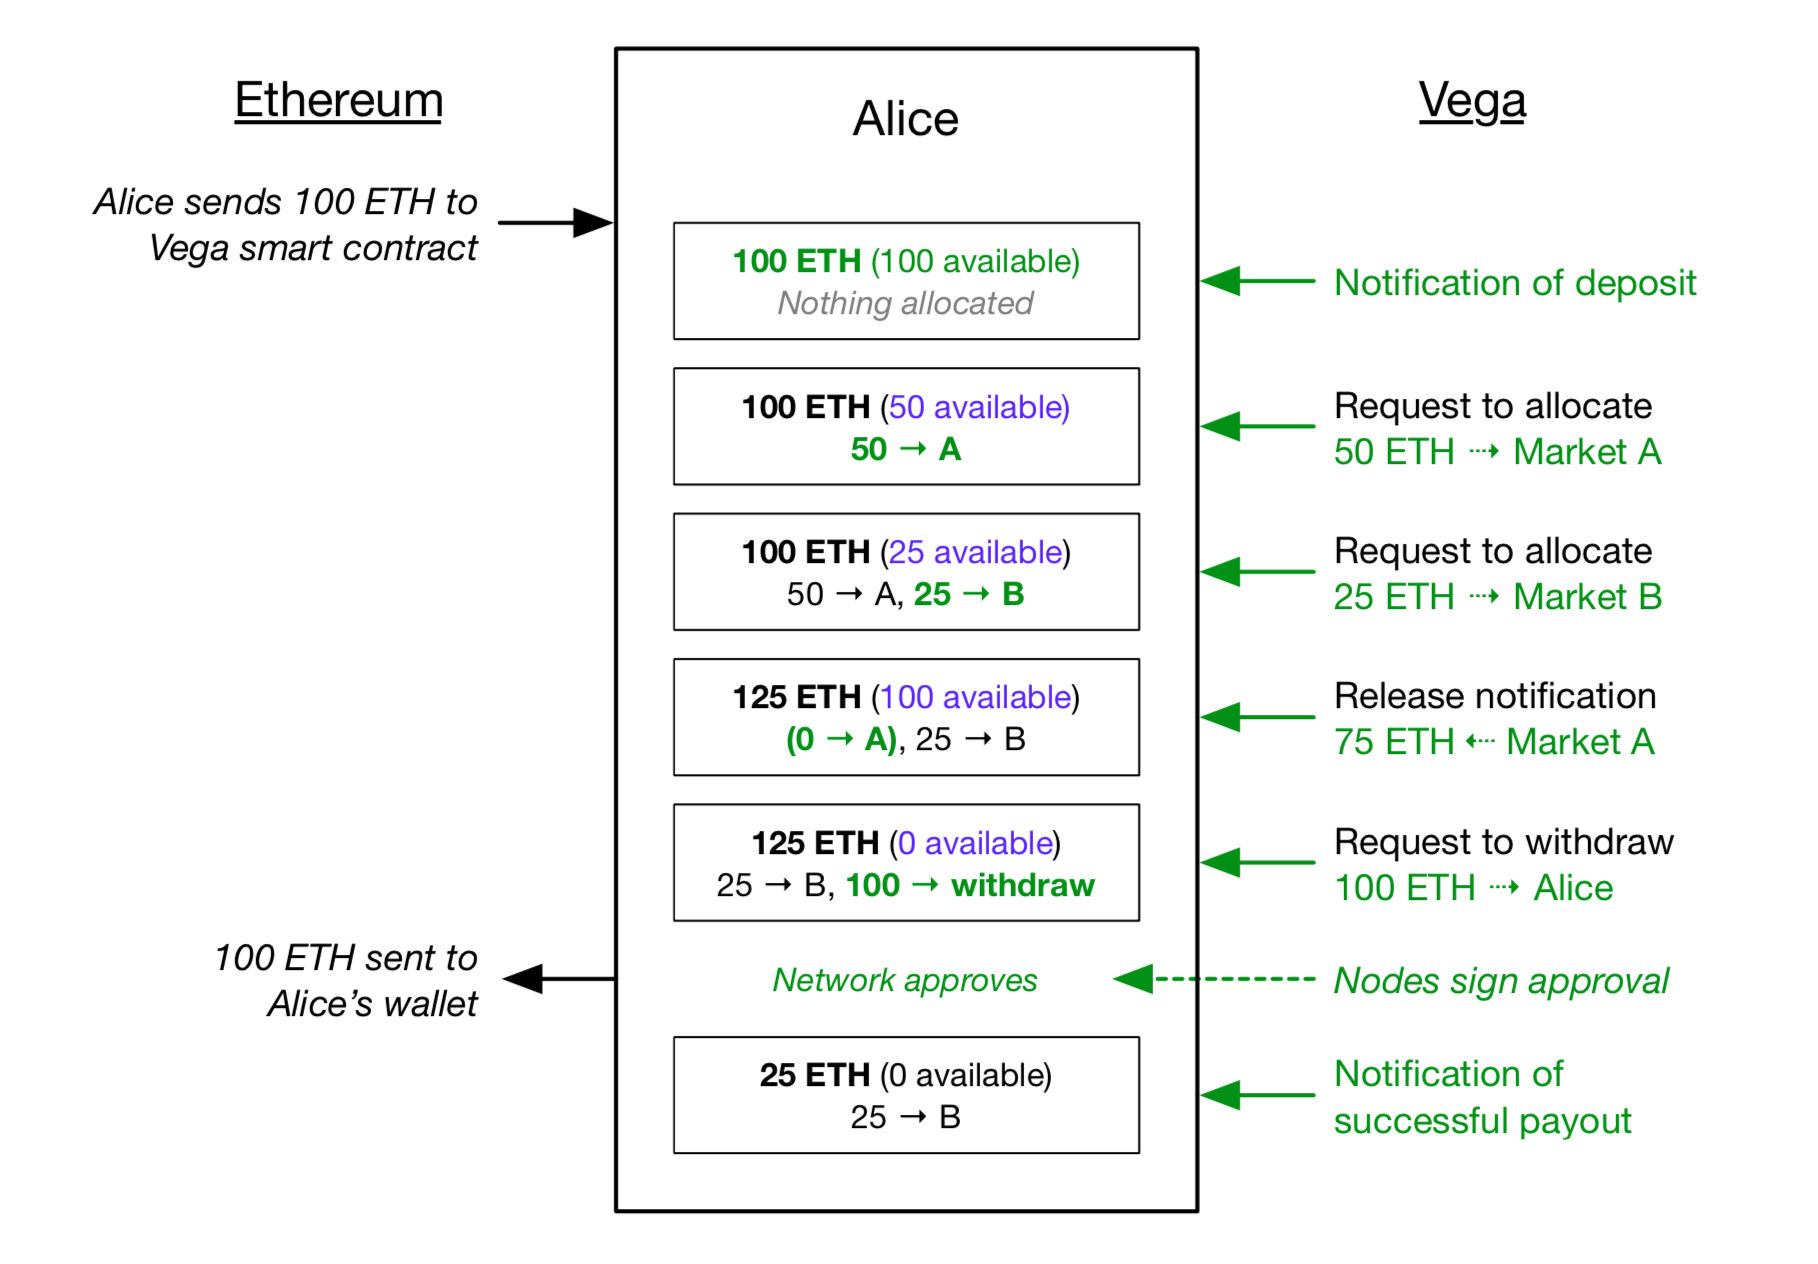 A graphical example of how the mechanics of collateral deposit, allocation, and withdrawal function on Vega